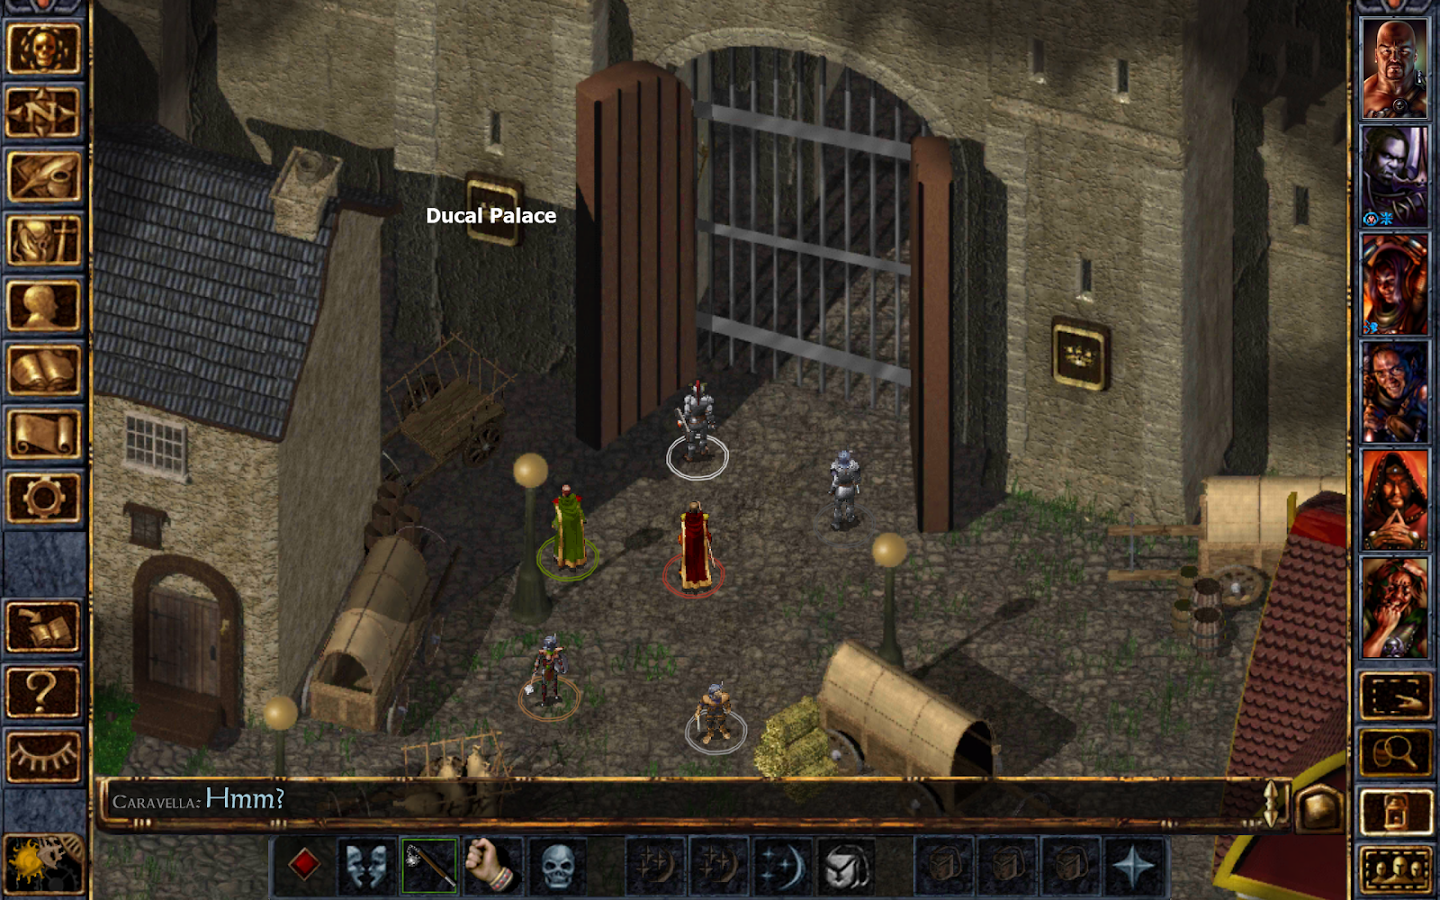 baldur's gate game